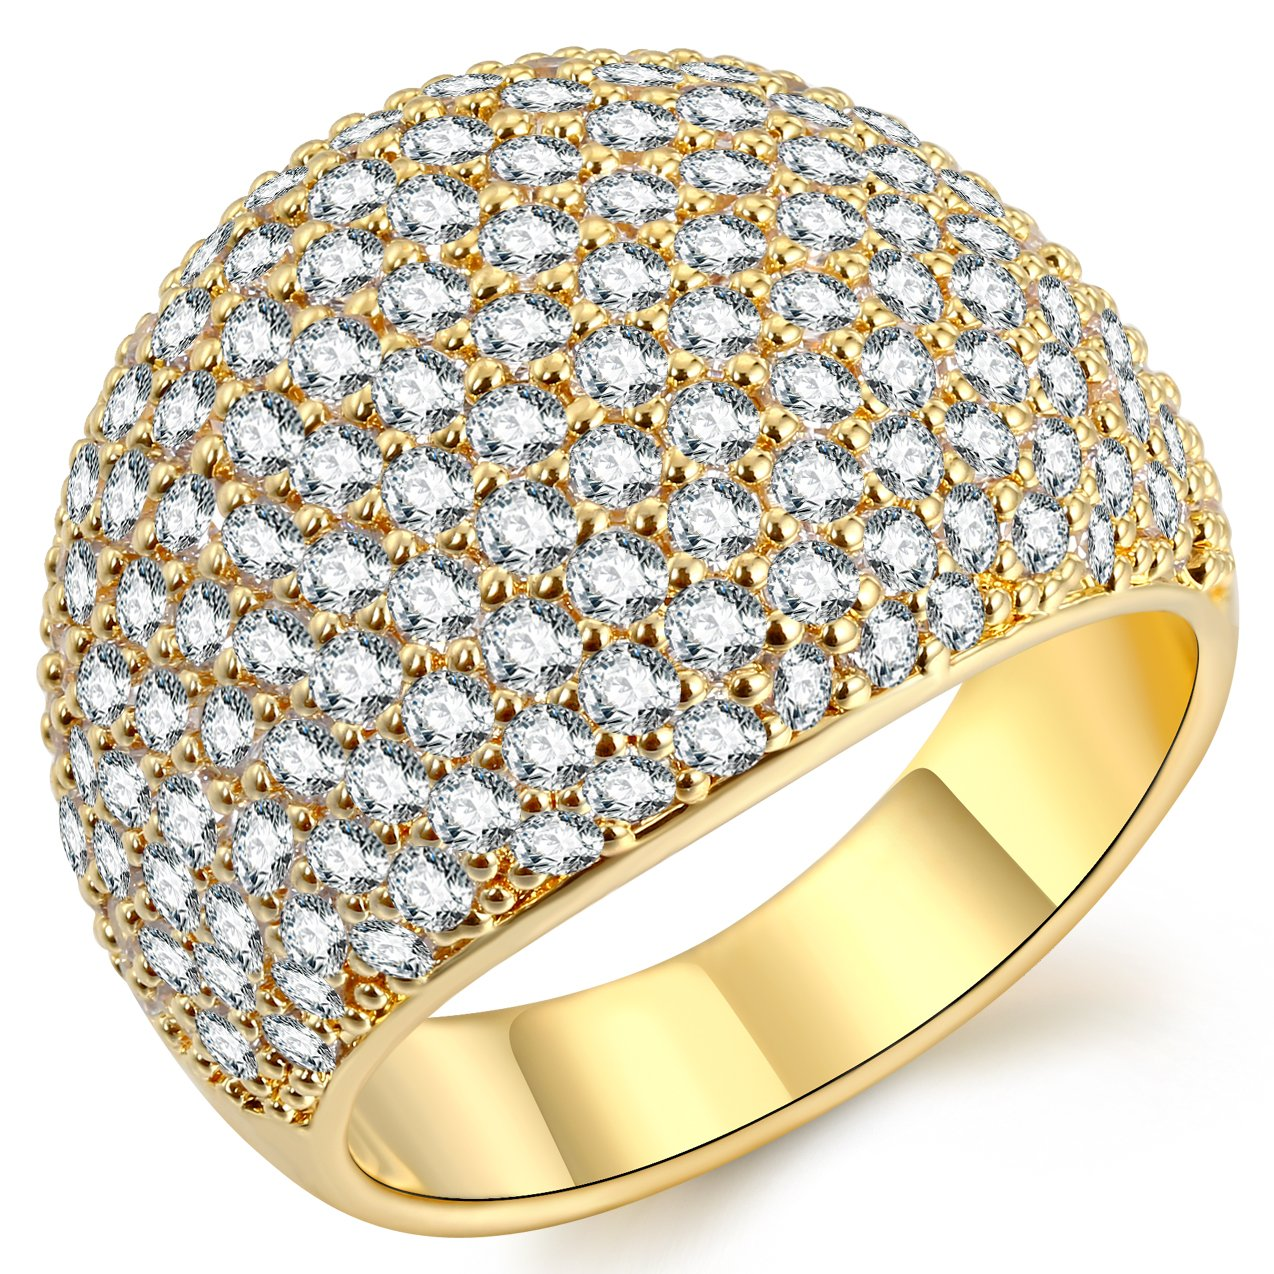 Gold Diamond Accent Dome Ring - Fine Polish Full Pave Cubic Zirconia Big Hollow Women Wedding Band Statement Ring 5-11